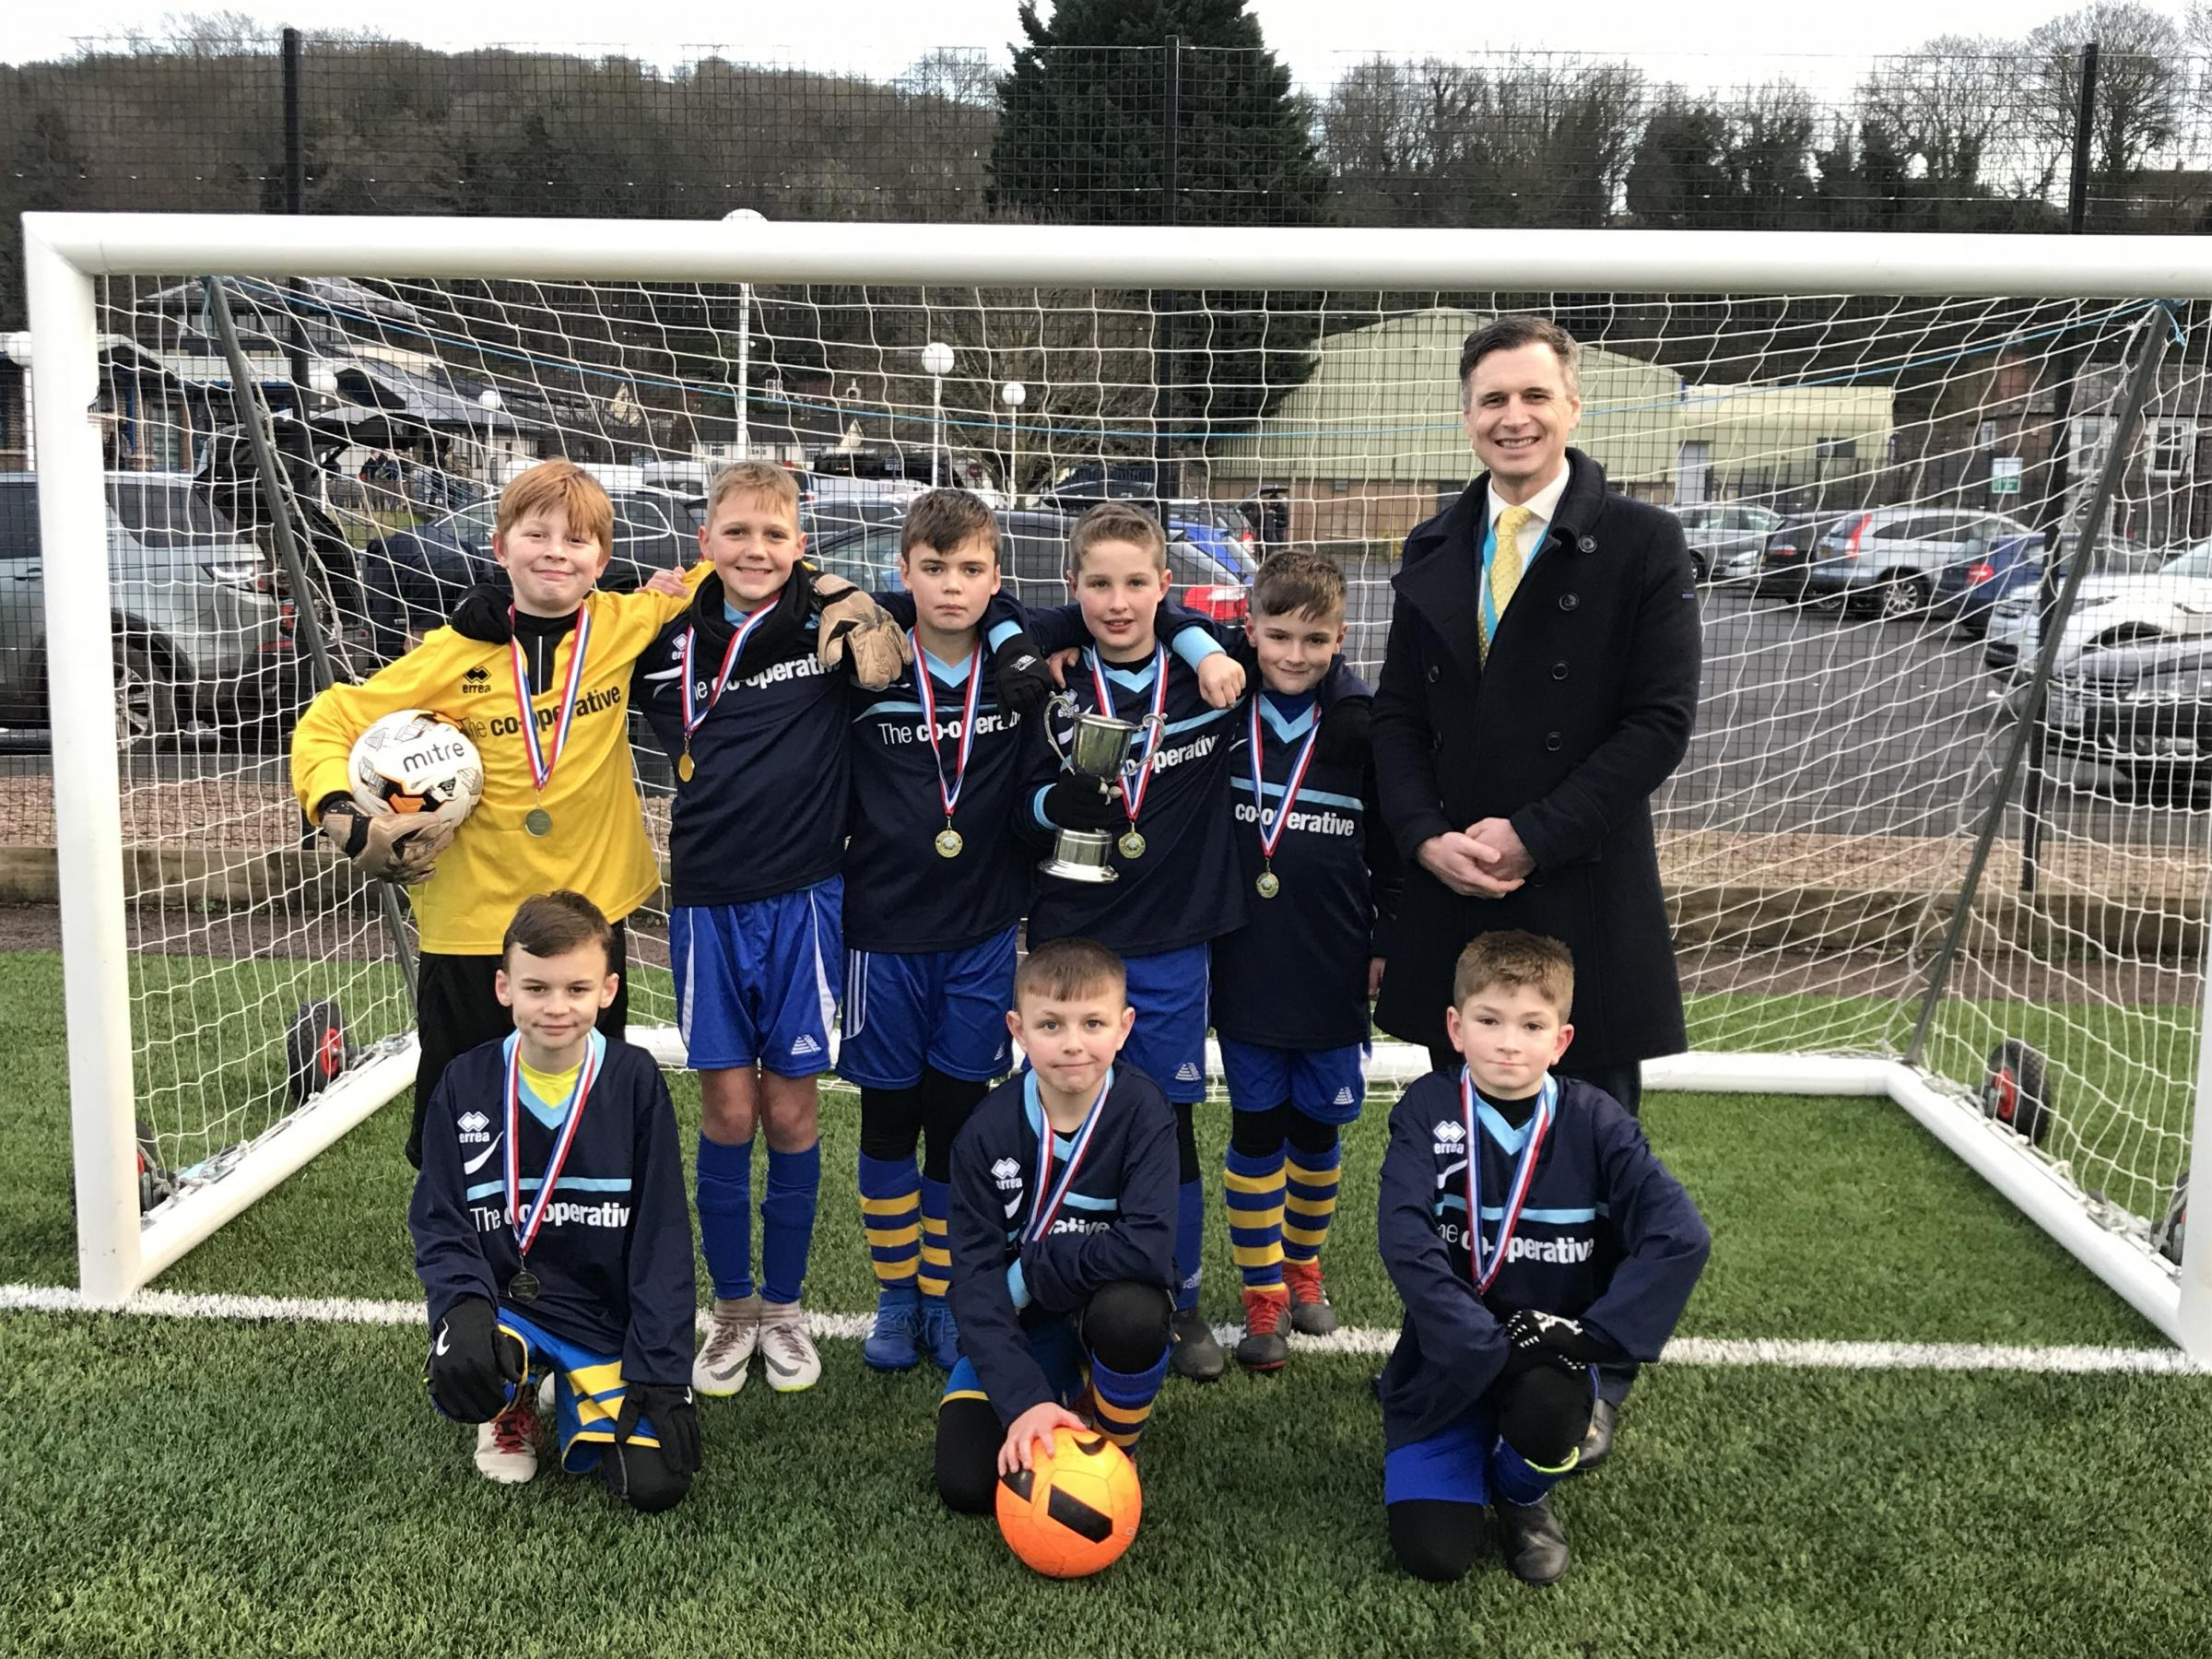 Overmonnow Primary School's A-team after being presented with the cup by Neil Shaw, headteacher at Monmouth School Boys' Prep.